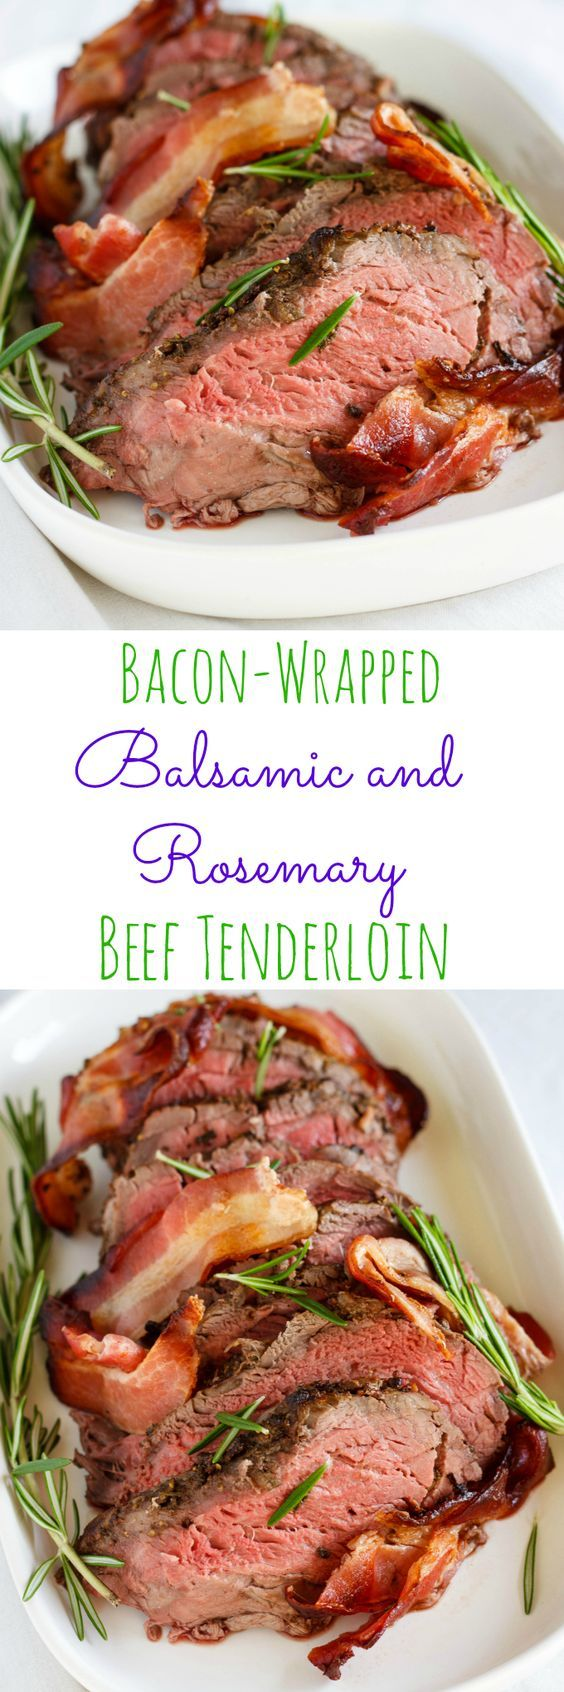 17 Best images about beef and pork on Pinterest | Pork ...